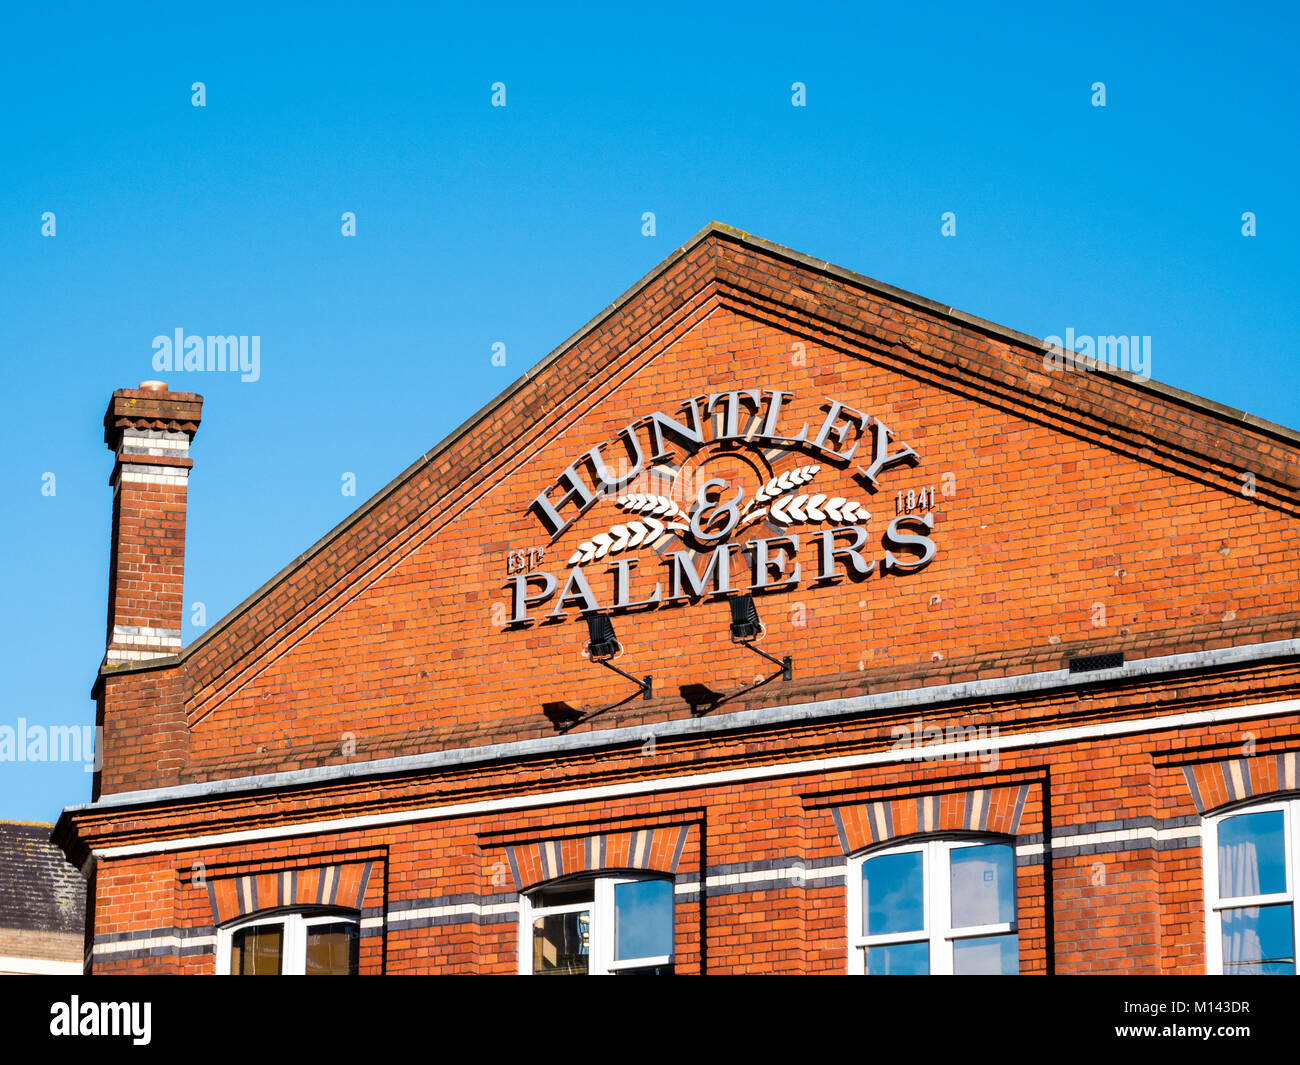 Palmers Building Stock Photos Palmers Building Stock Images Alamy